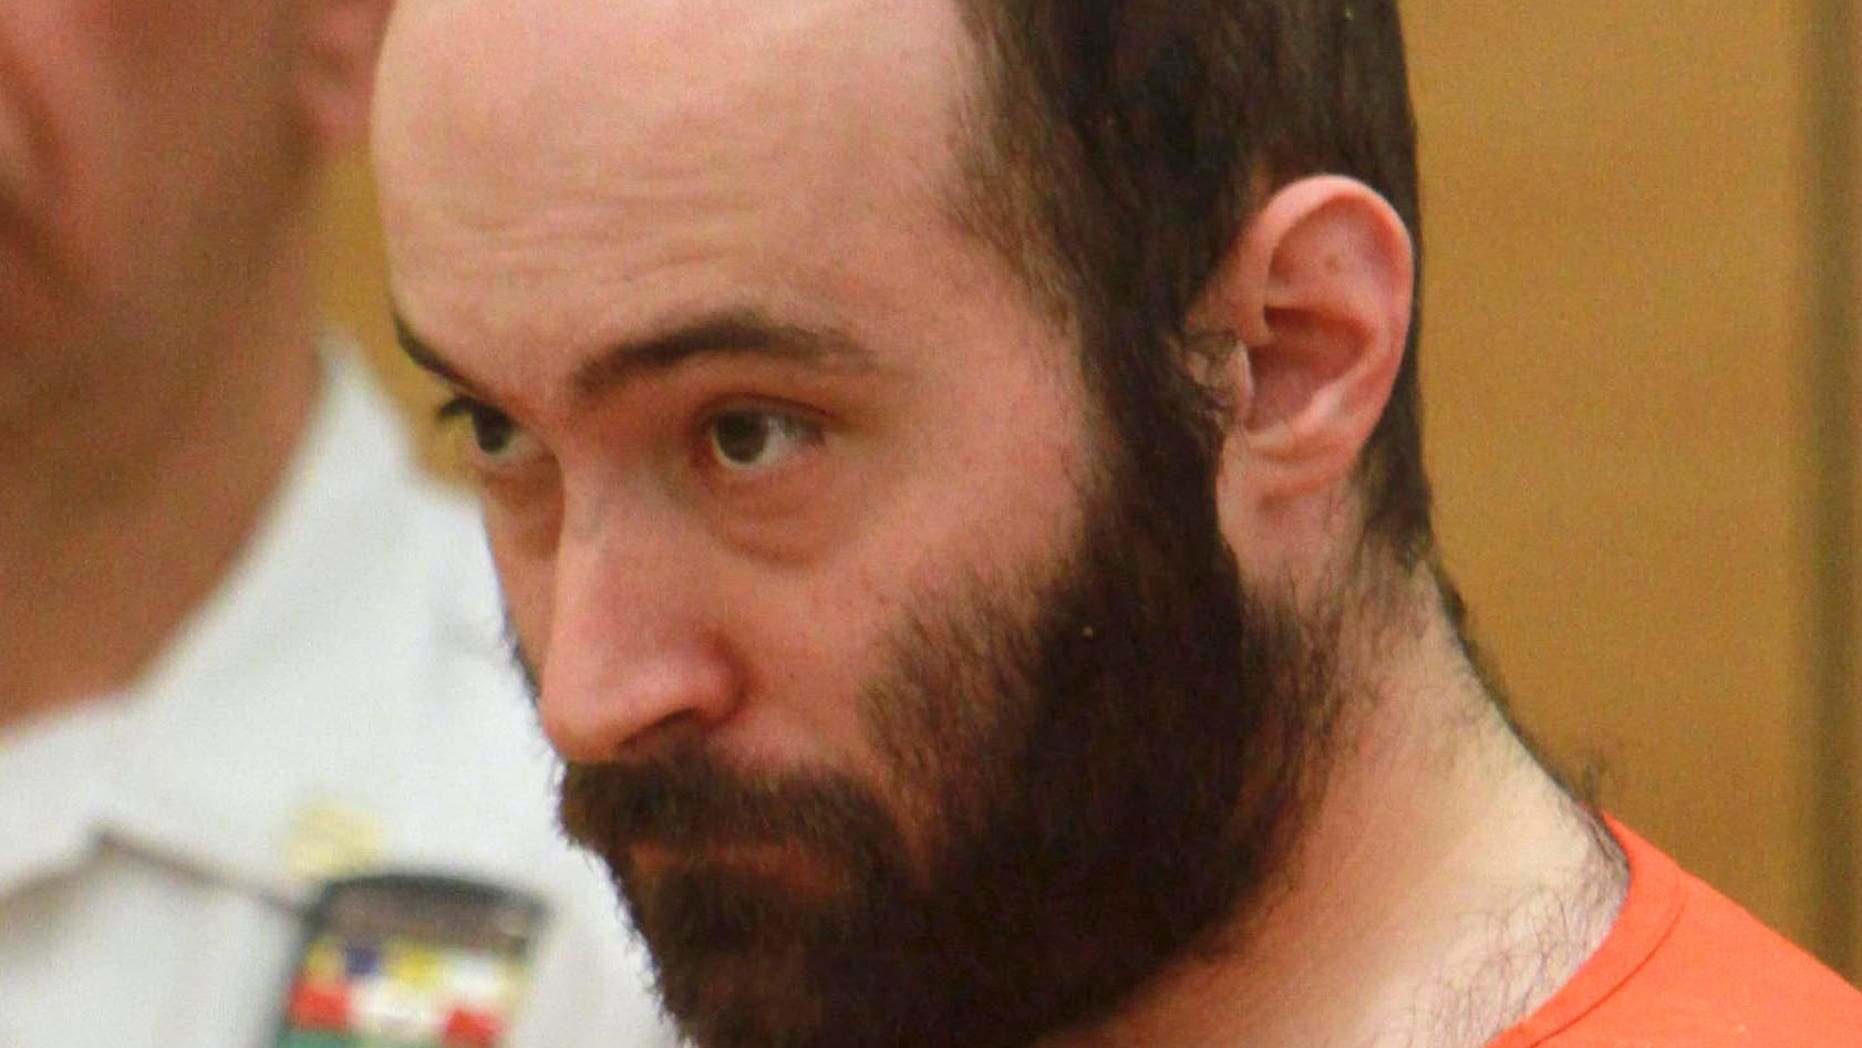 Levi Aron, accused of abducting and dismembering eight-year-old boy Leiby Kletzky, is arraigned in Brooklyn criminal court in New York in 2011.